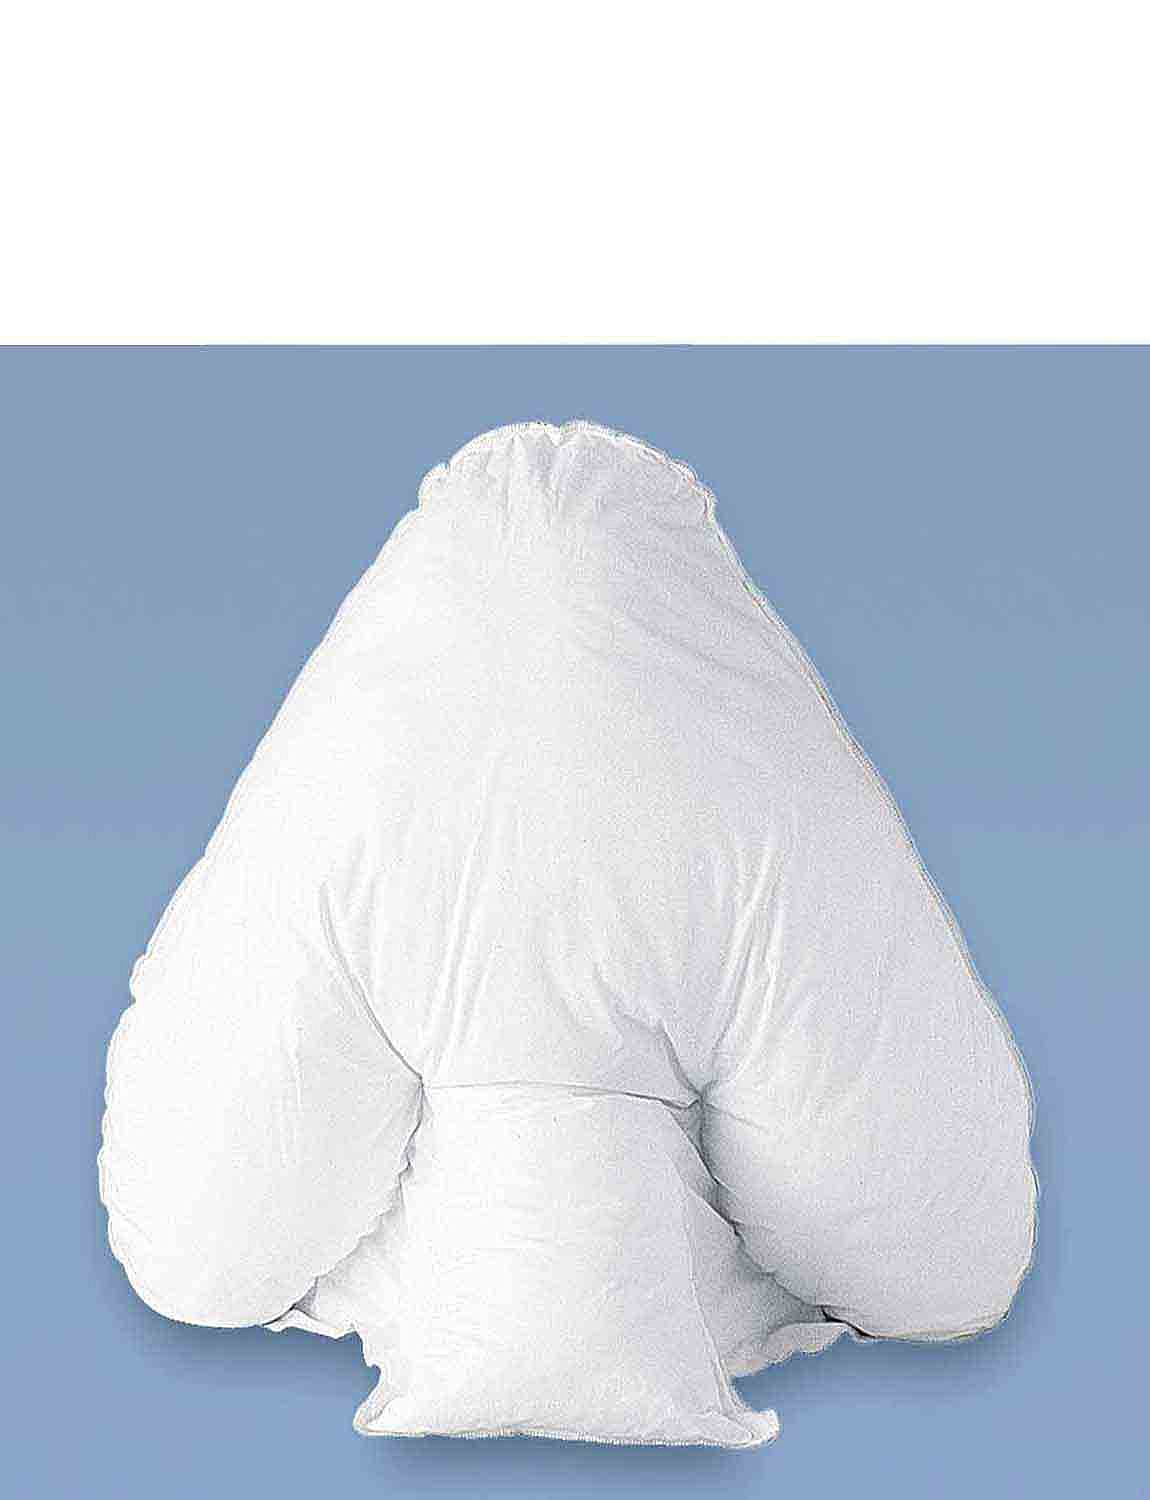 Batwing Support Pillow - White